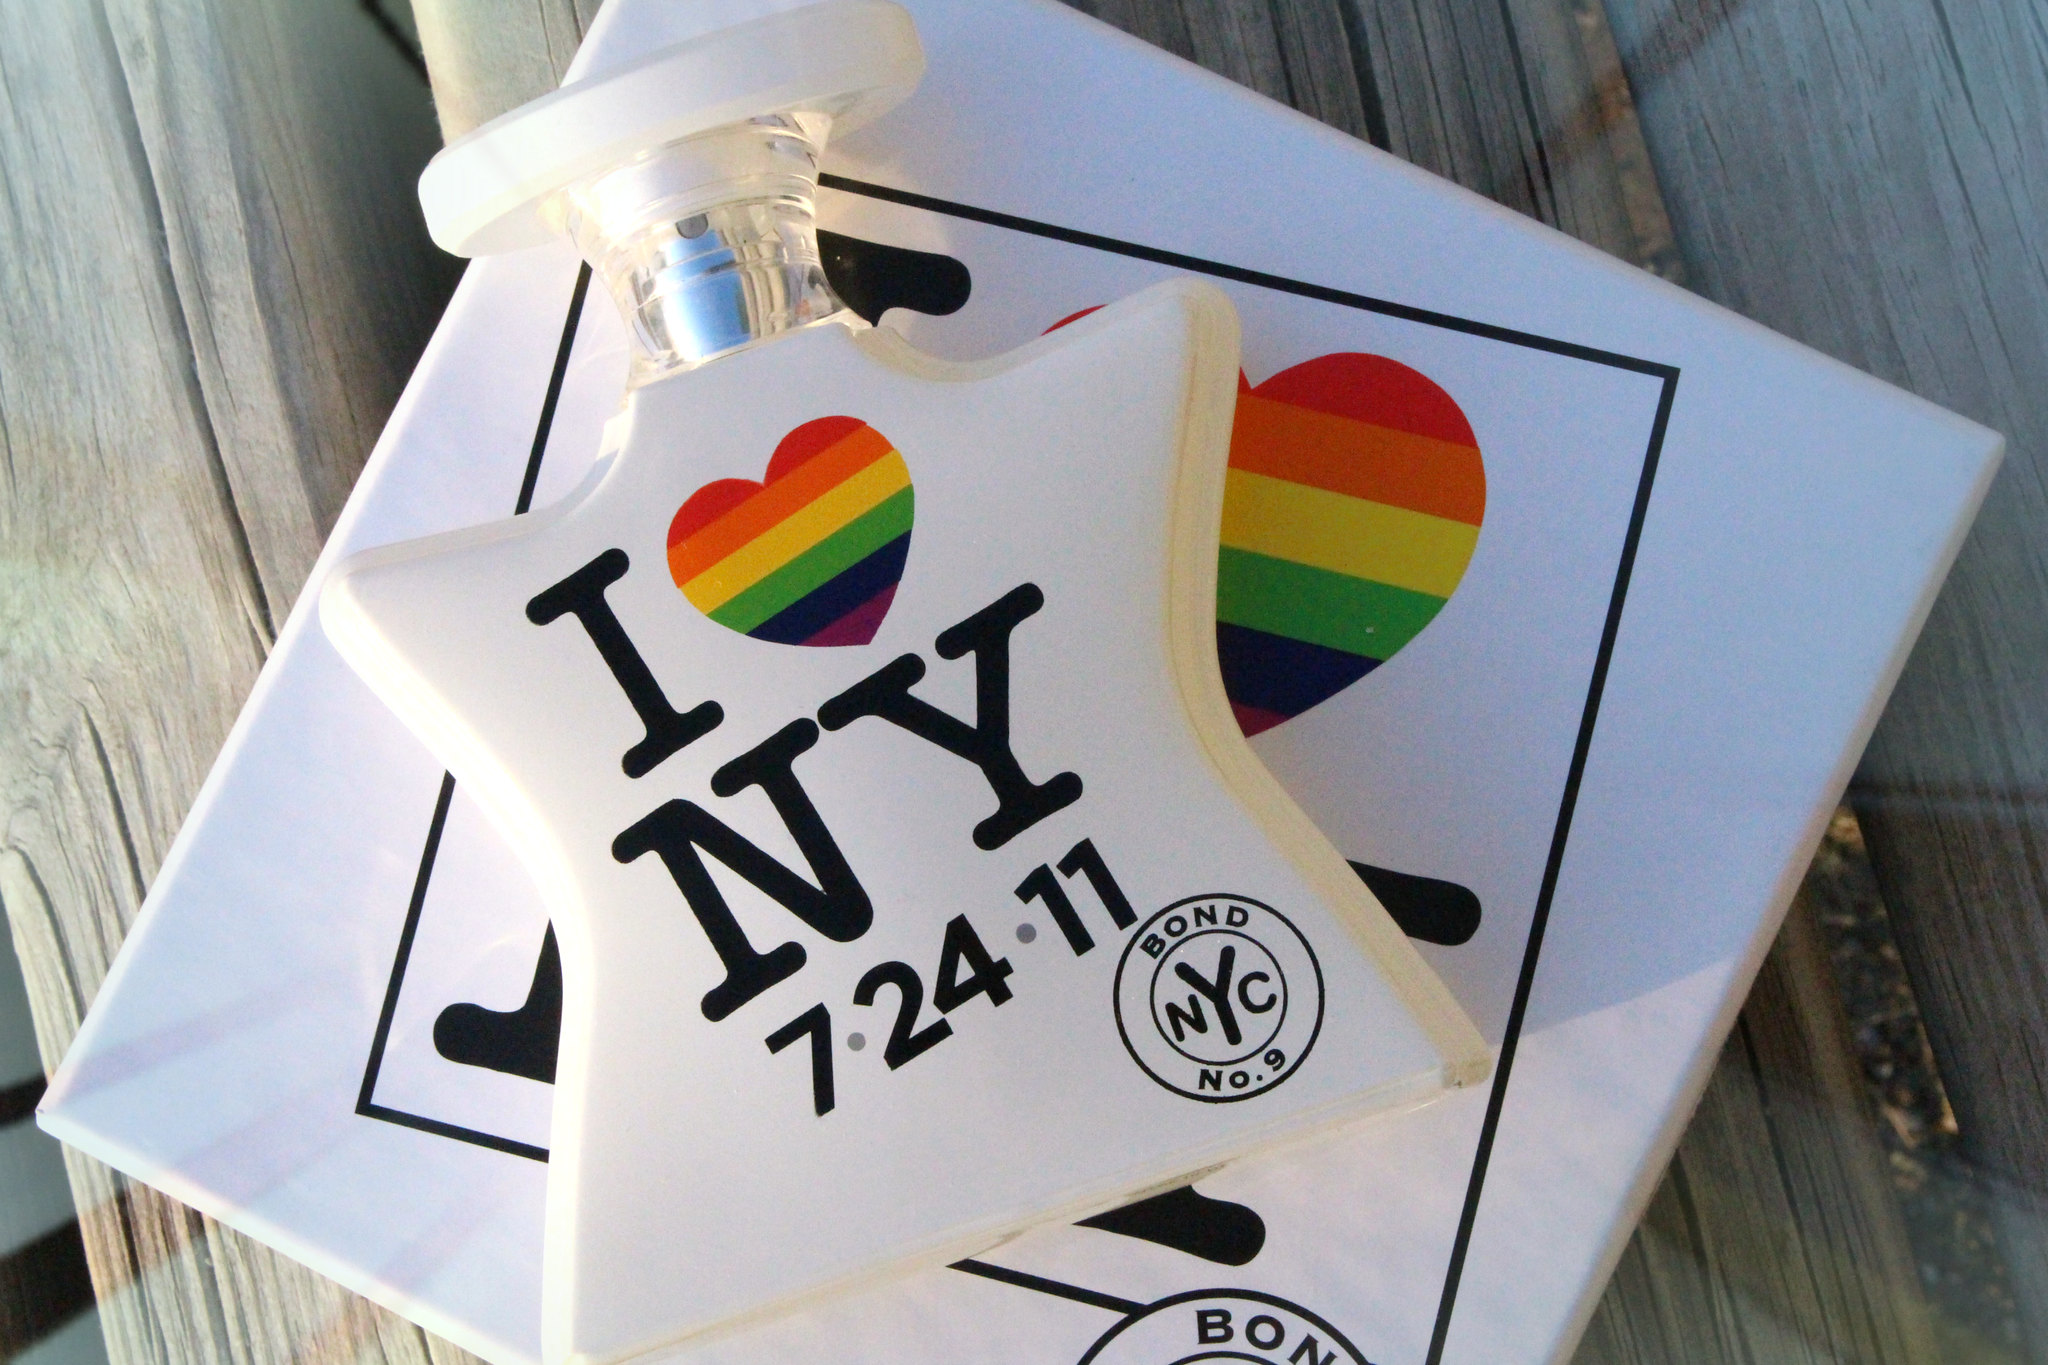 Bond No 9 ILNY for Marriage Equality